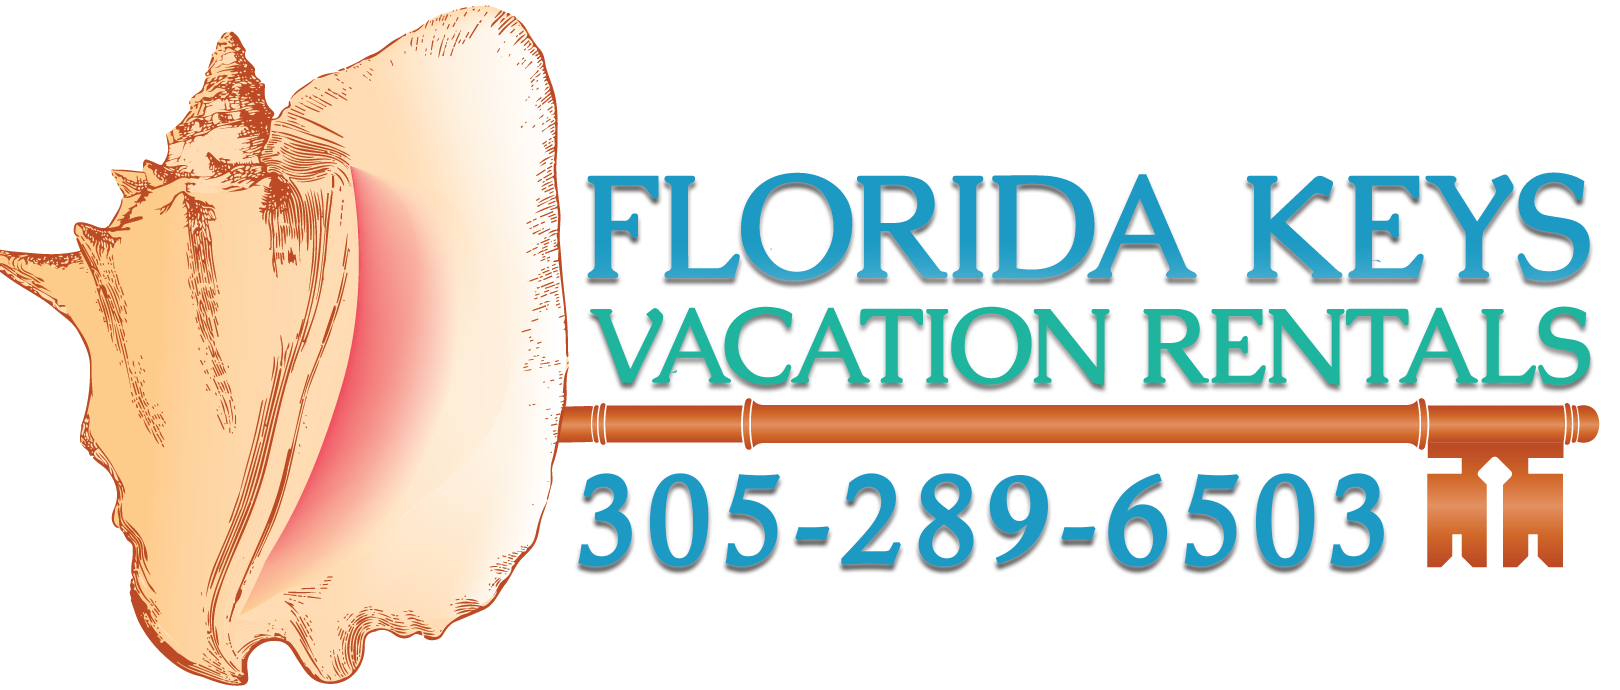 Florida Keys Vacation Rental Blog